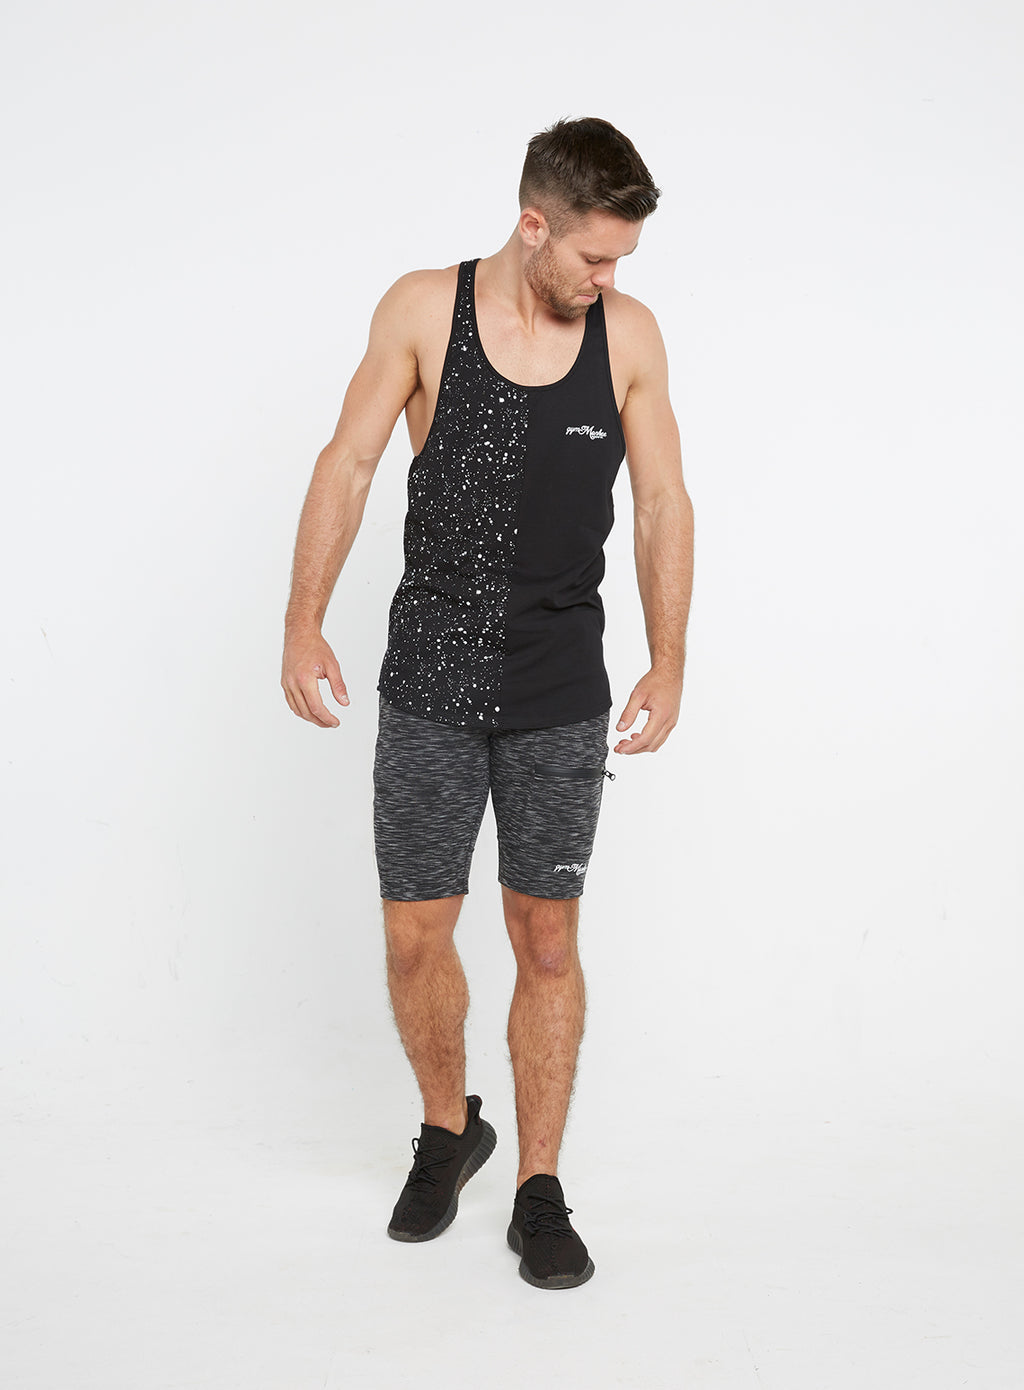 Gym Monkee - Black Speckled Vest FRONT FULL